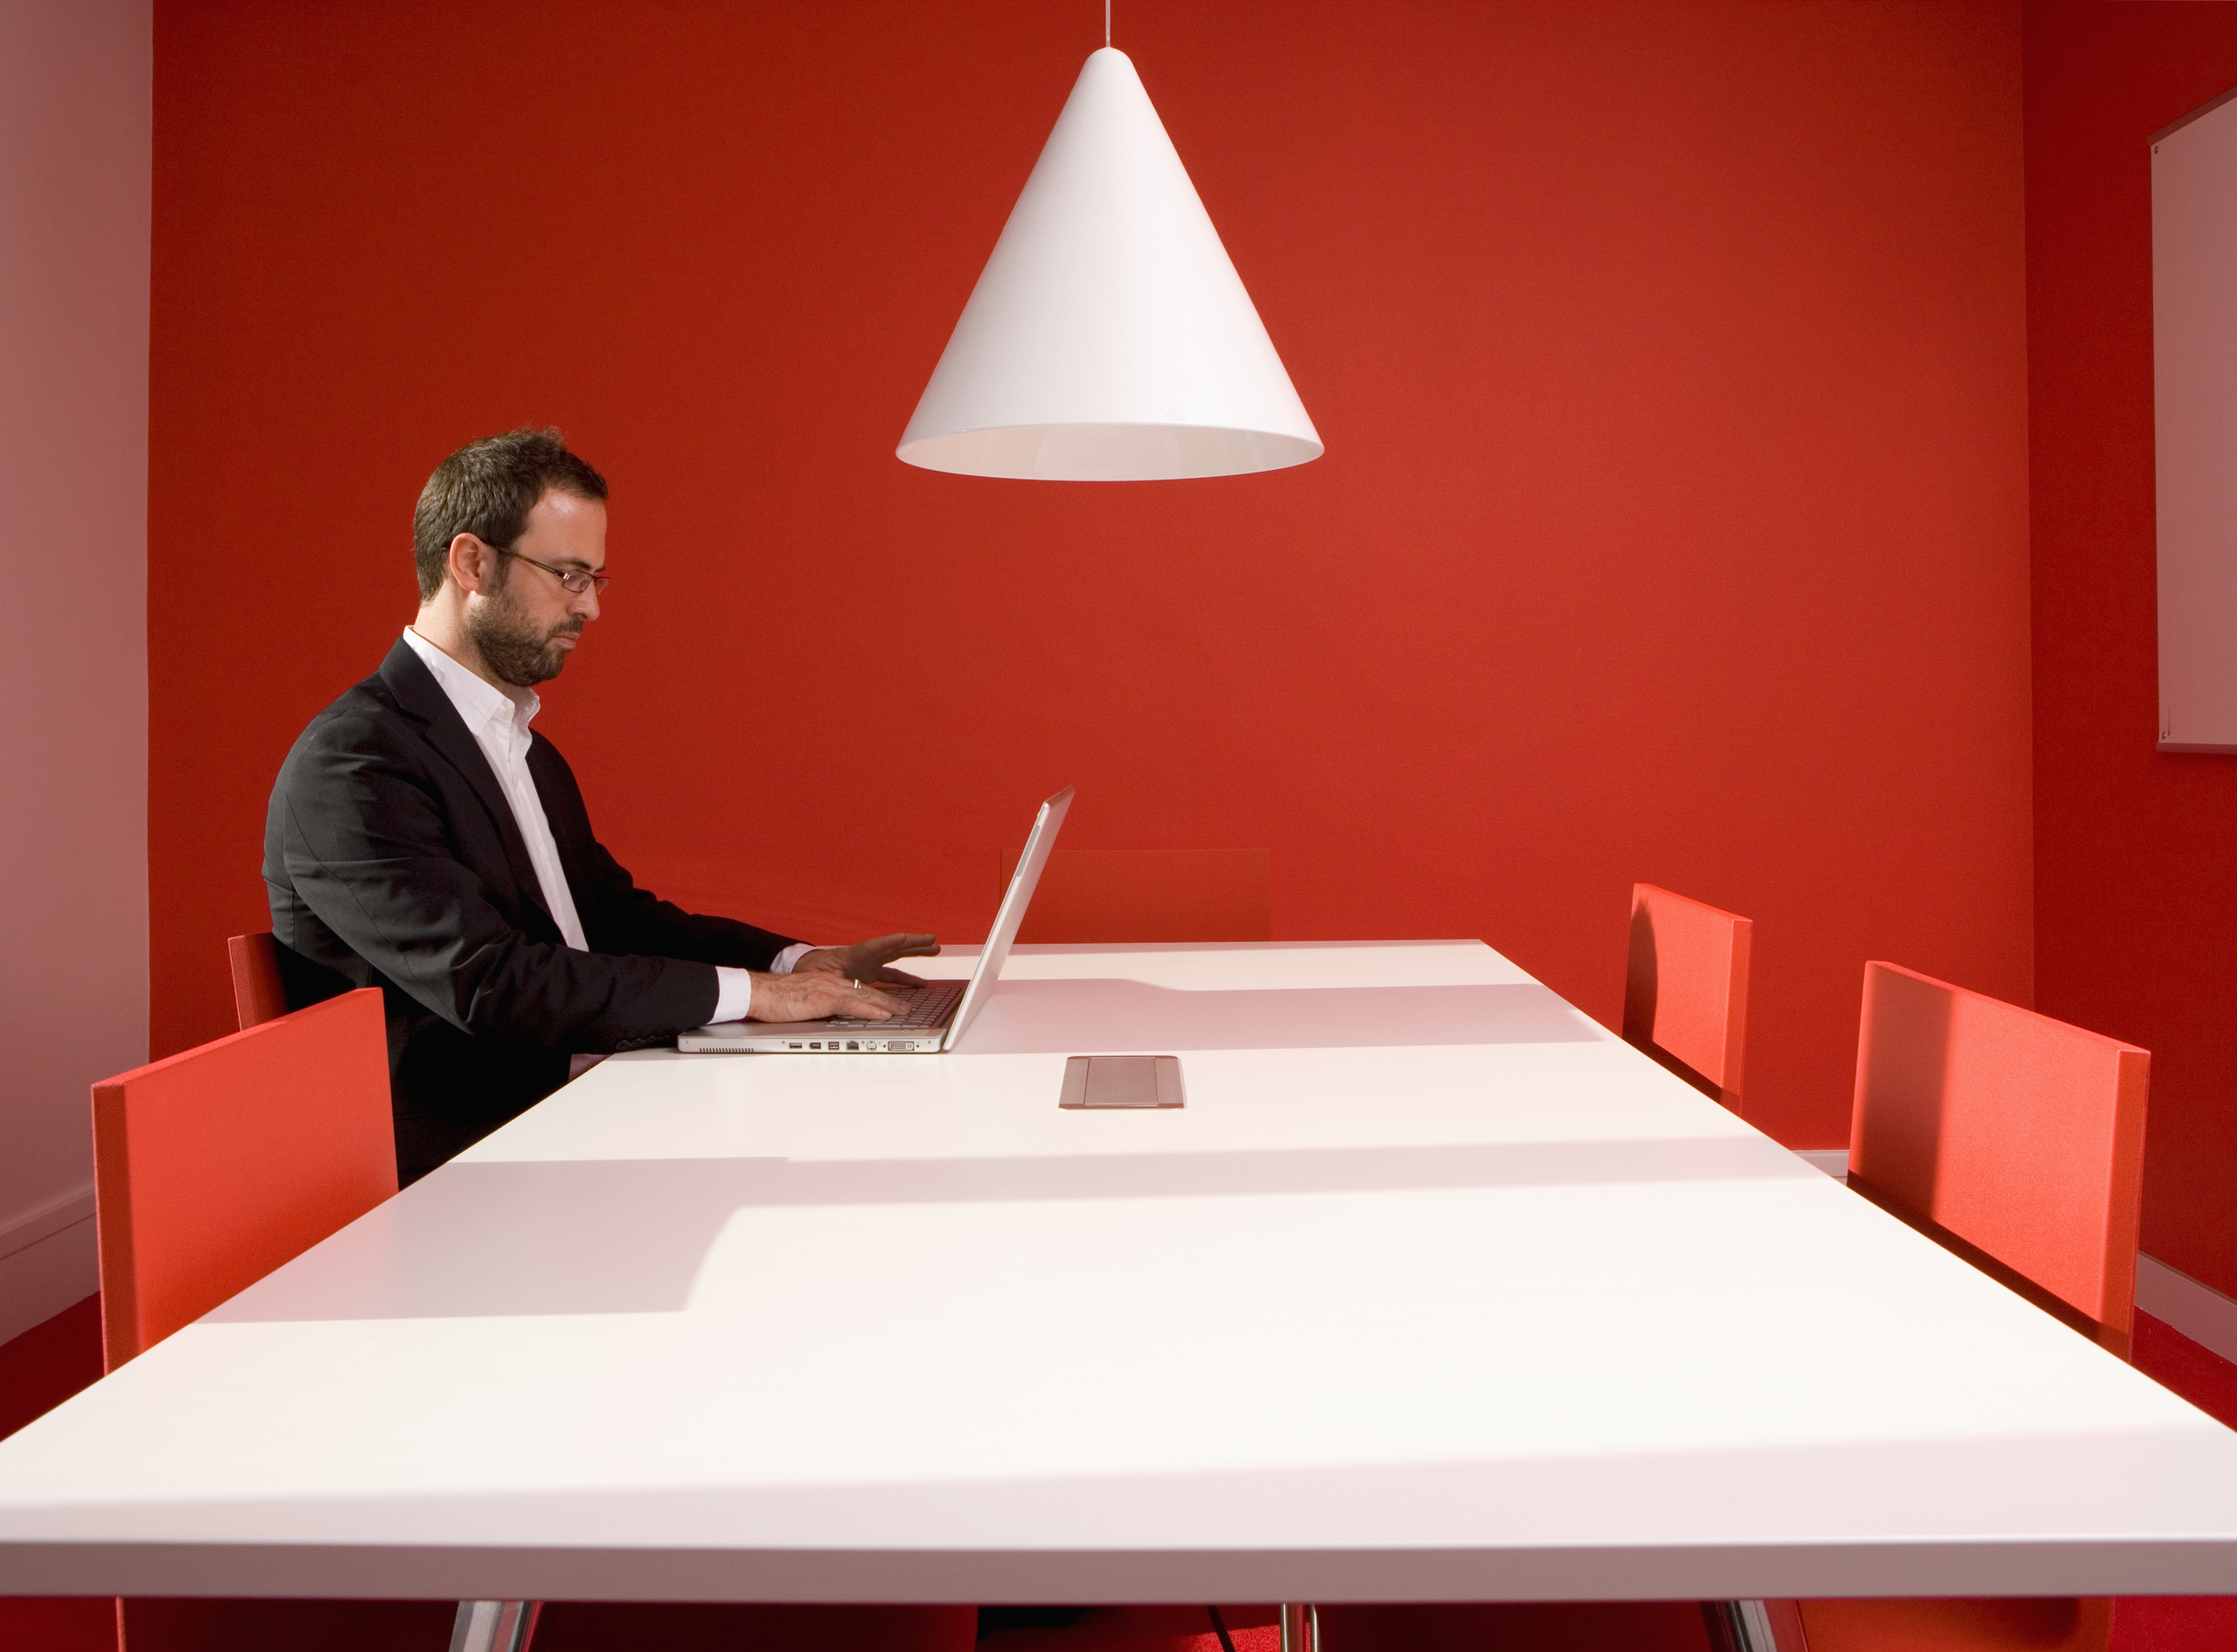 Executive using Laptop in Red and White Room